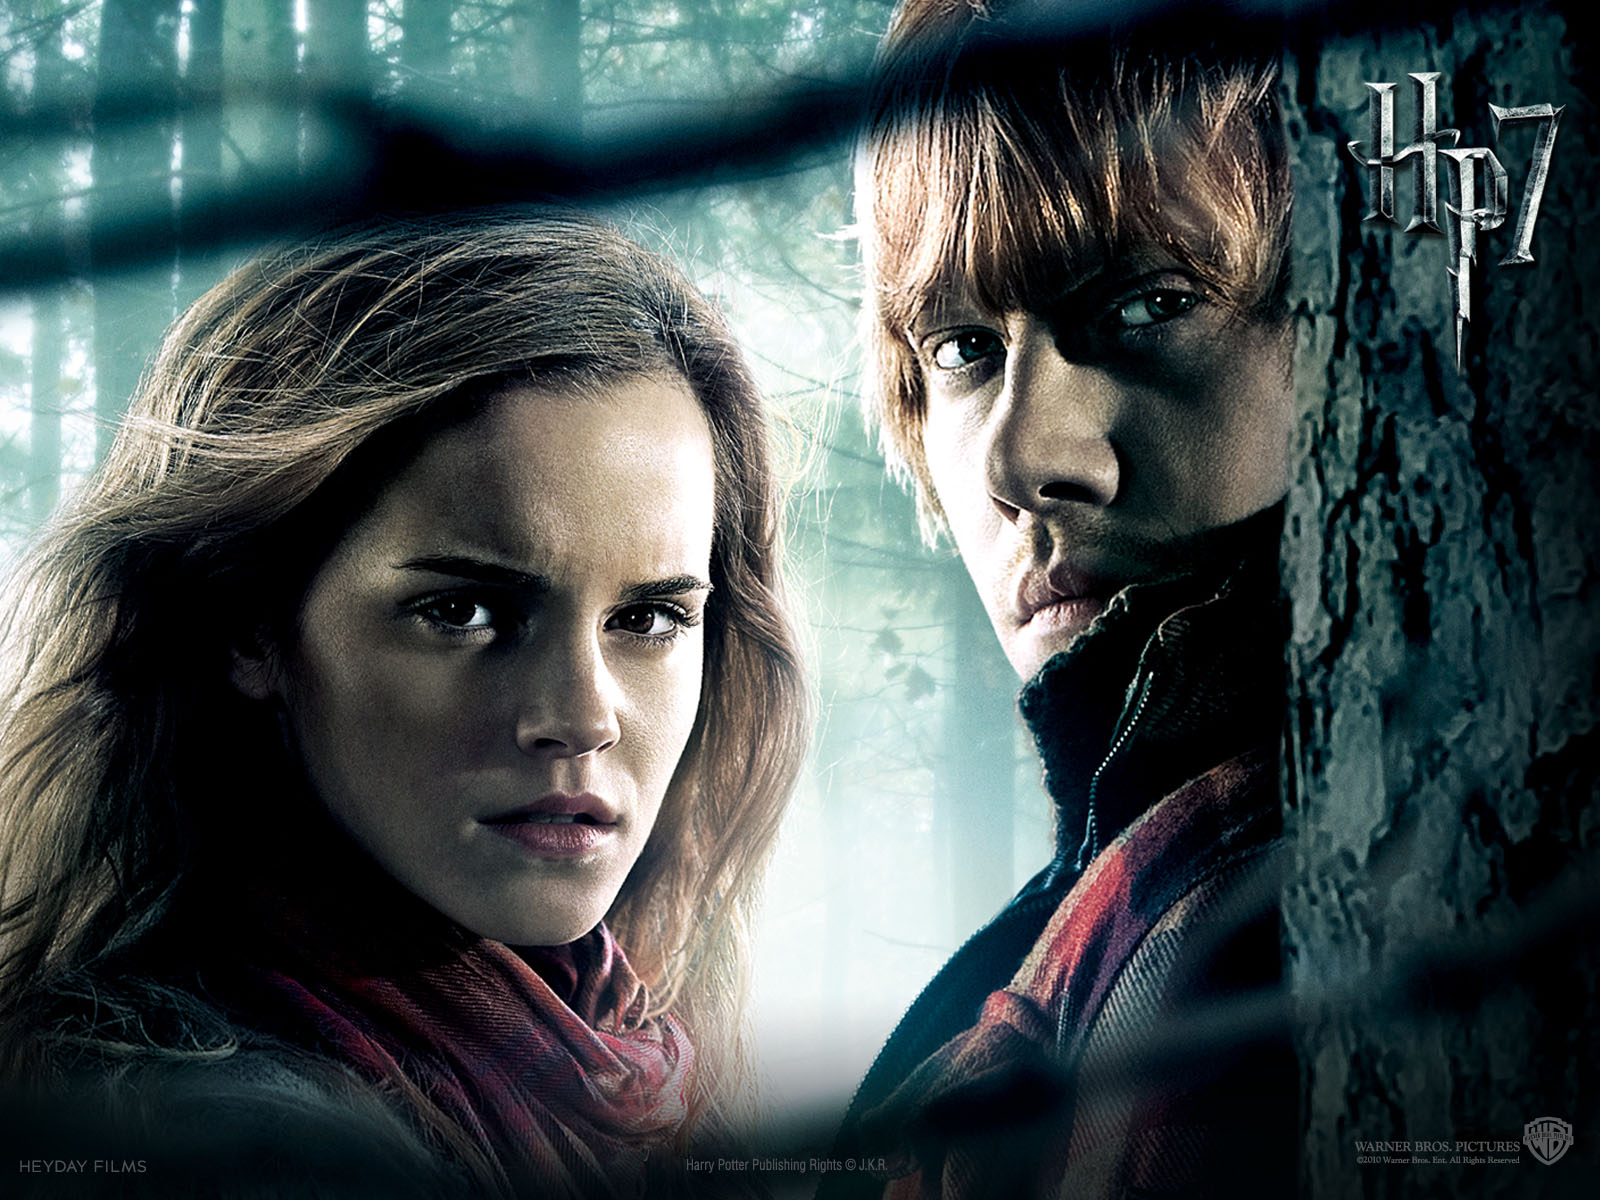 http://1.bp.blogspot.com/_y6KIPvOYMOA/TNW_4Agt4lI/AAAAAAAAEbw/Aphg7BZVF-E/s1600/Emma_Watson_in_Harry_Potter_and_the_Deathly_Hallows__Part_I_Wallpaper_10_1024.jpg